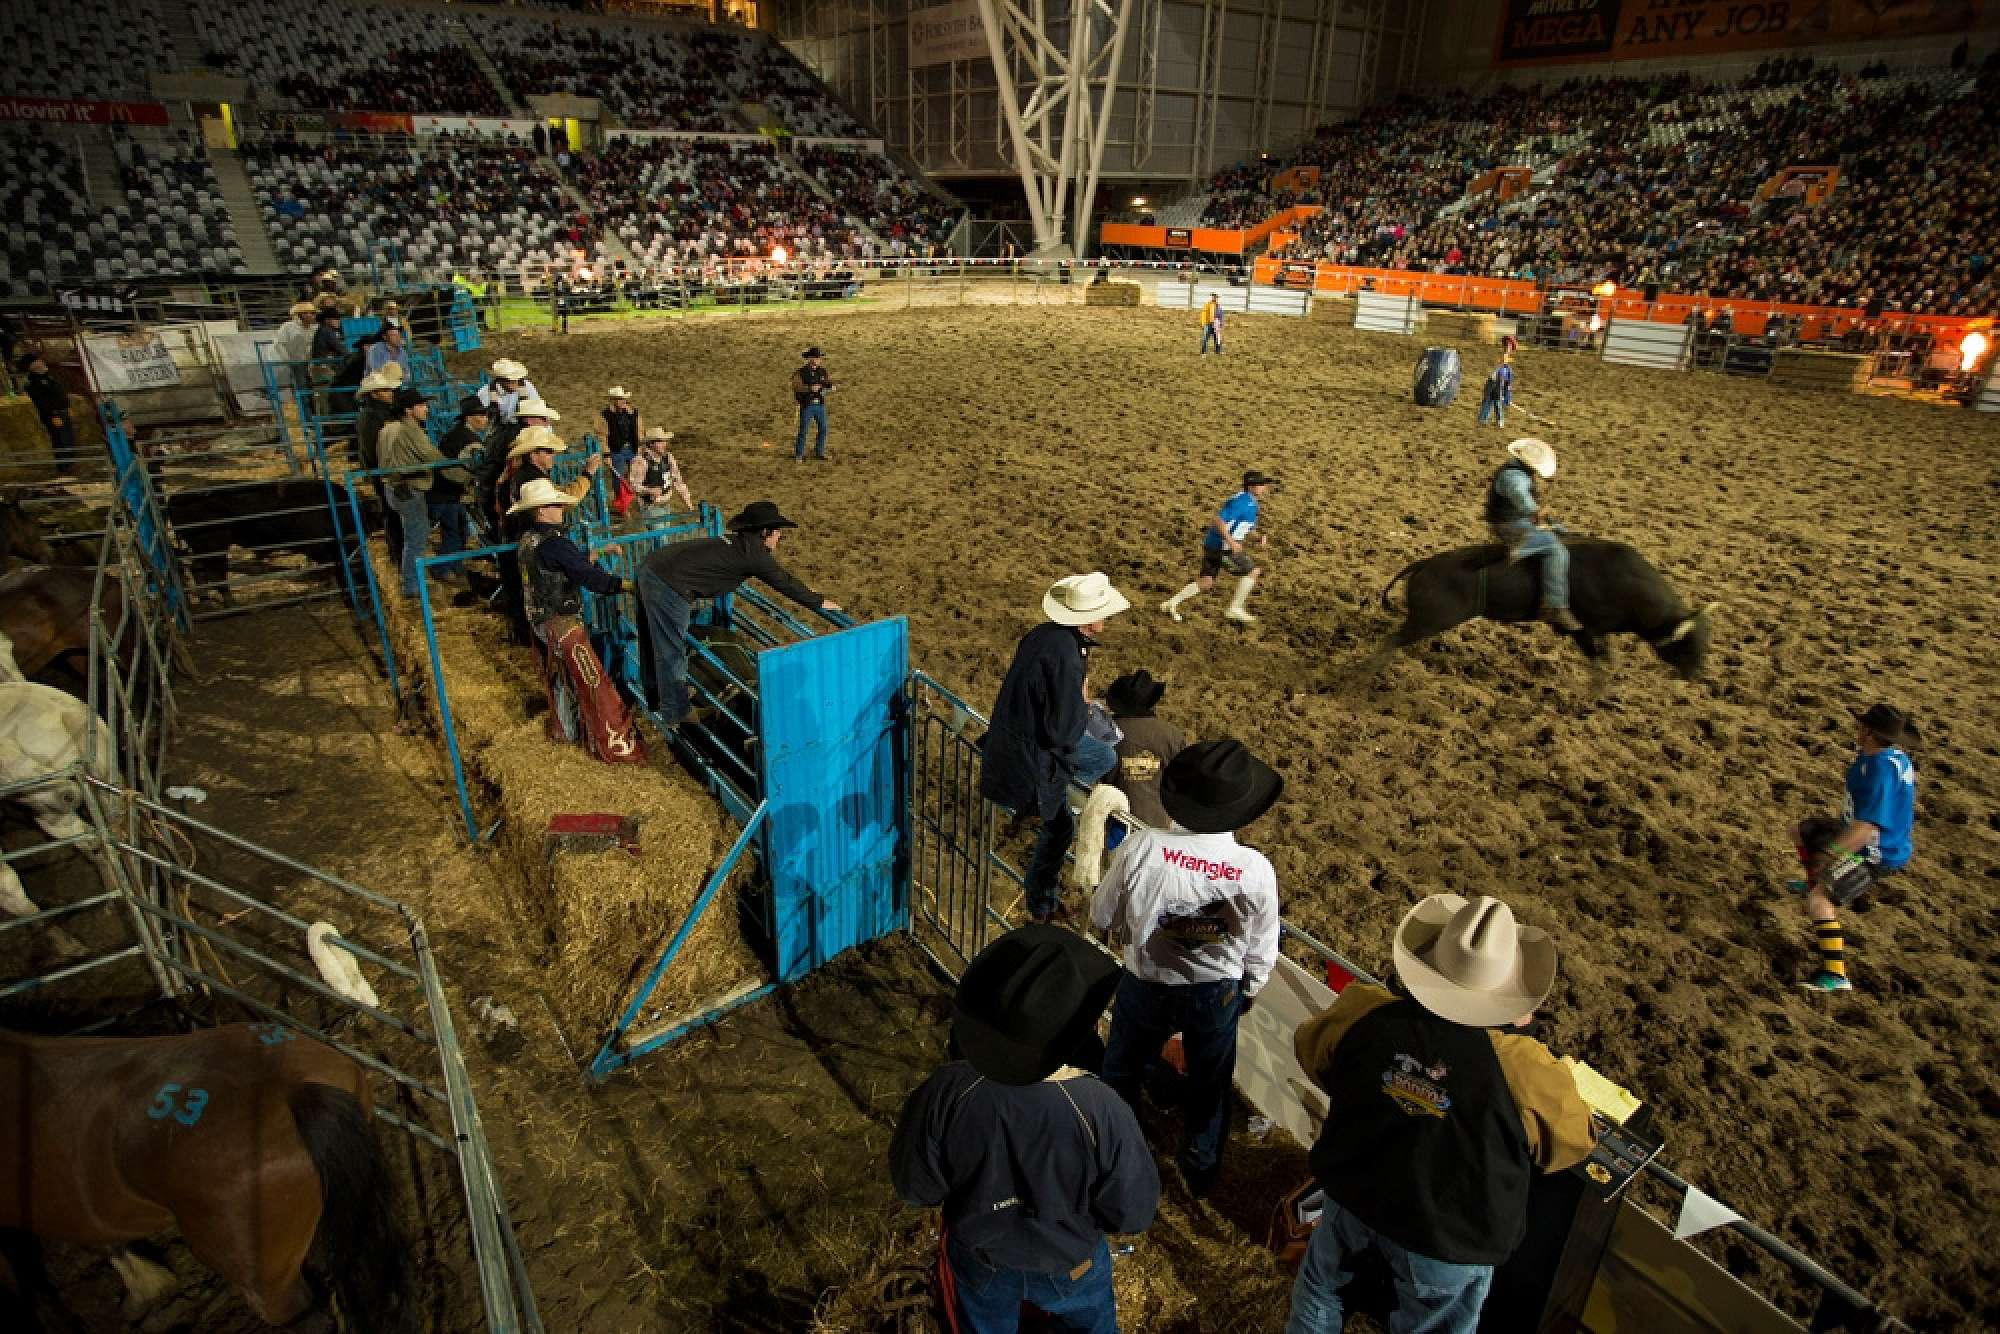 International Rodeo